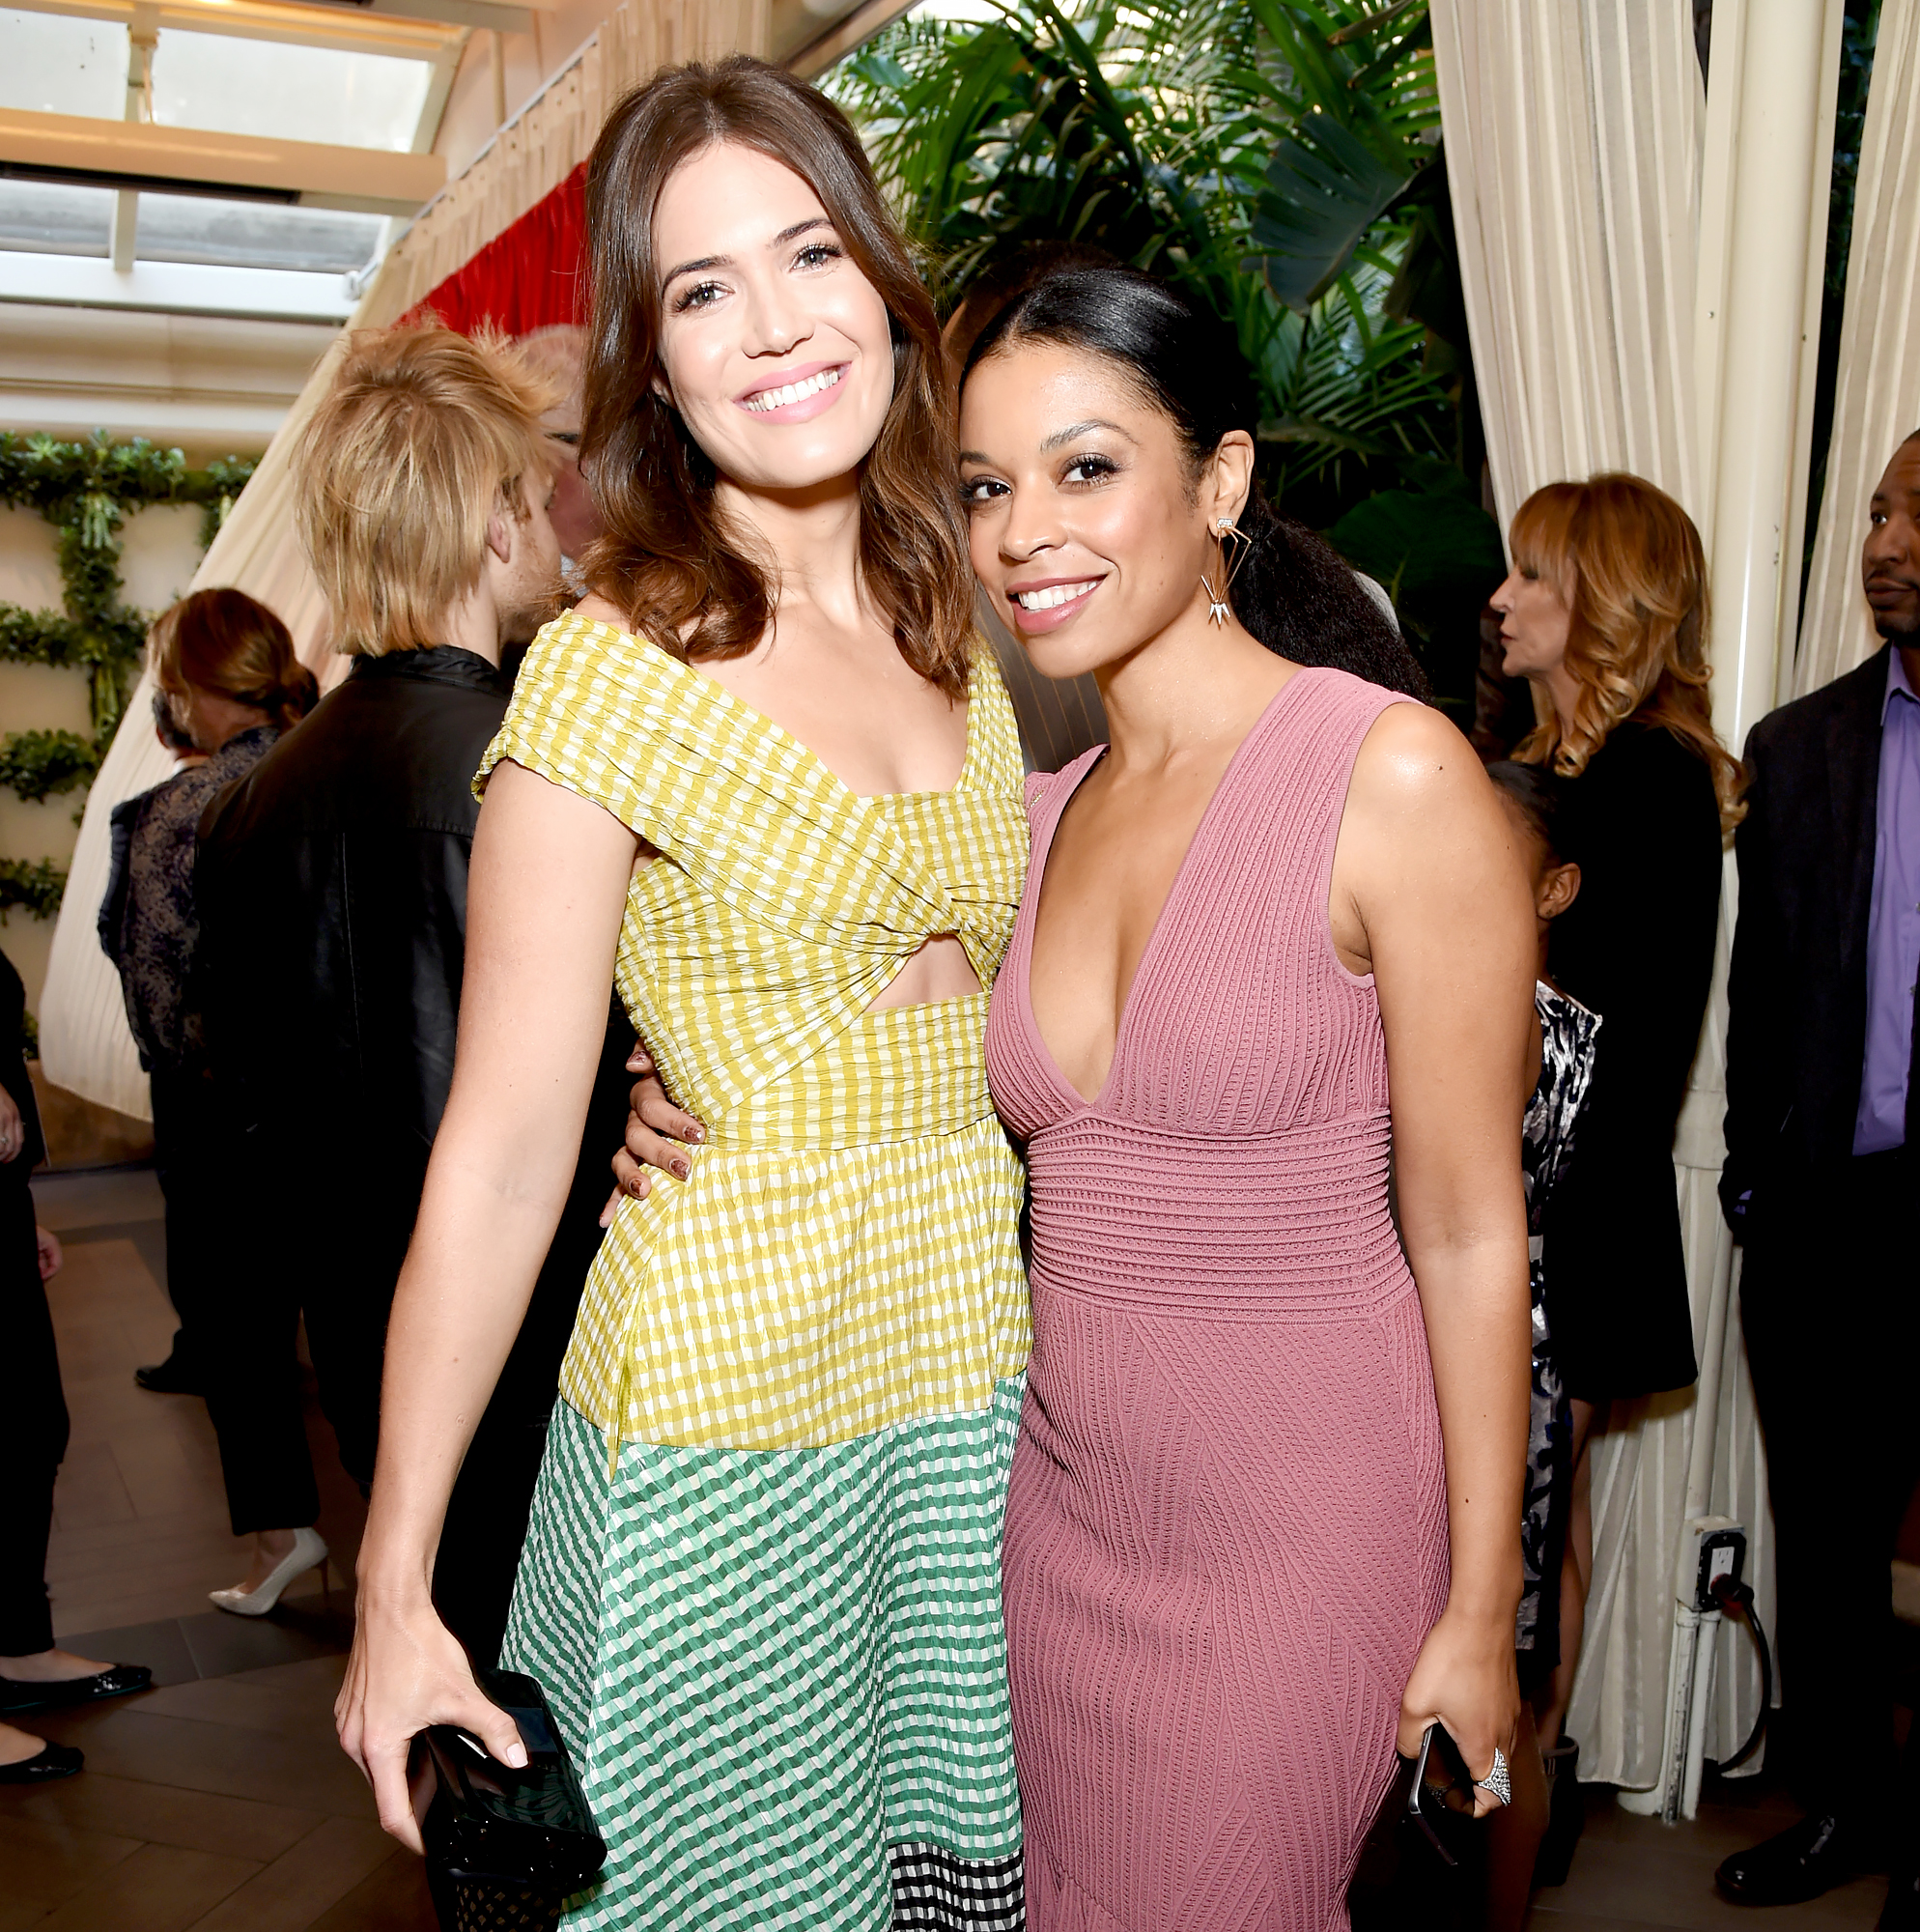 Susan-Kelechi-Watson-Is-Proud-of-Mandy-Moore - Mandy Moore and Susan Kelechi Watson